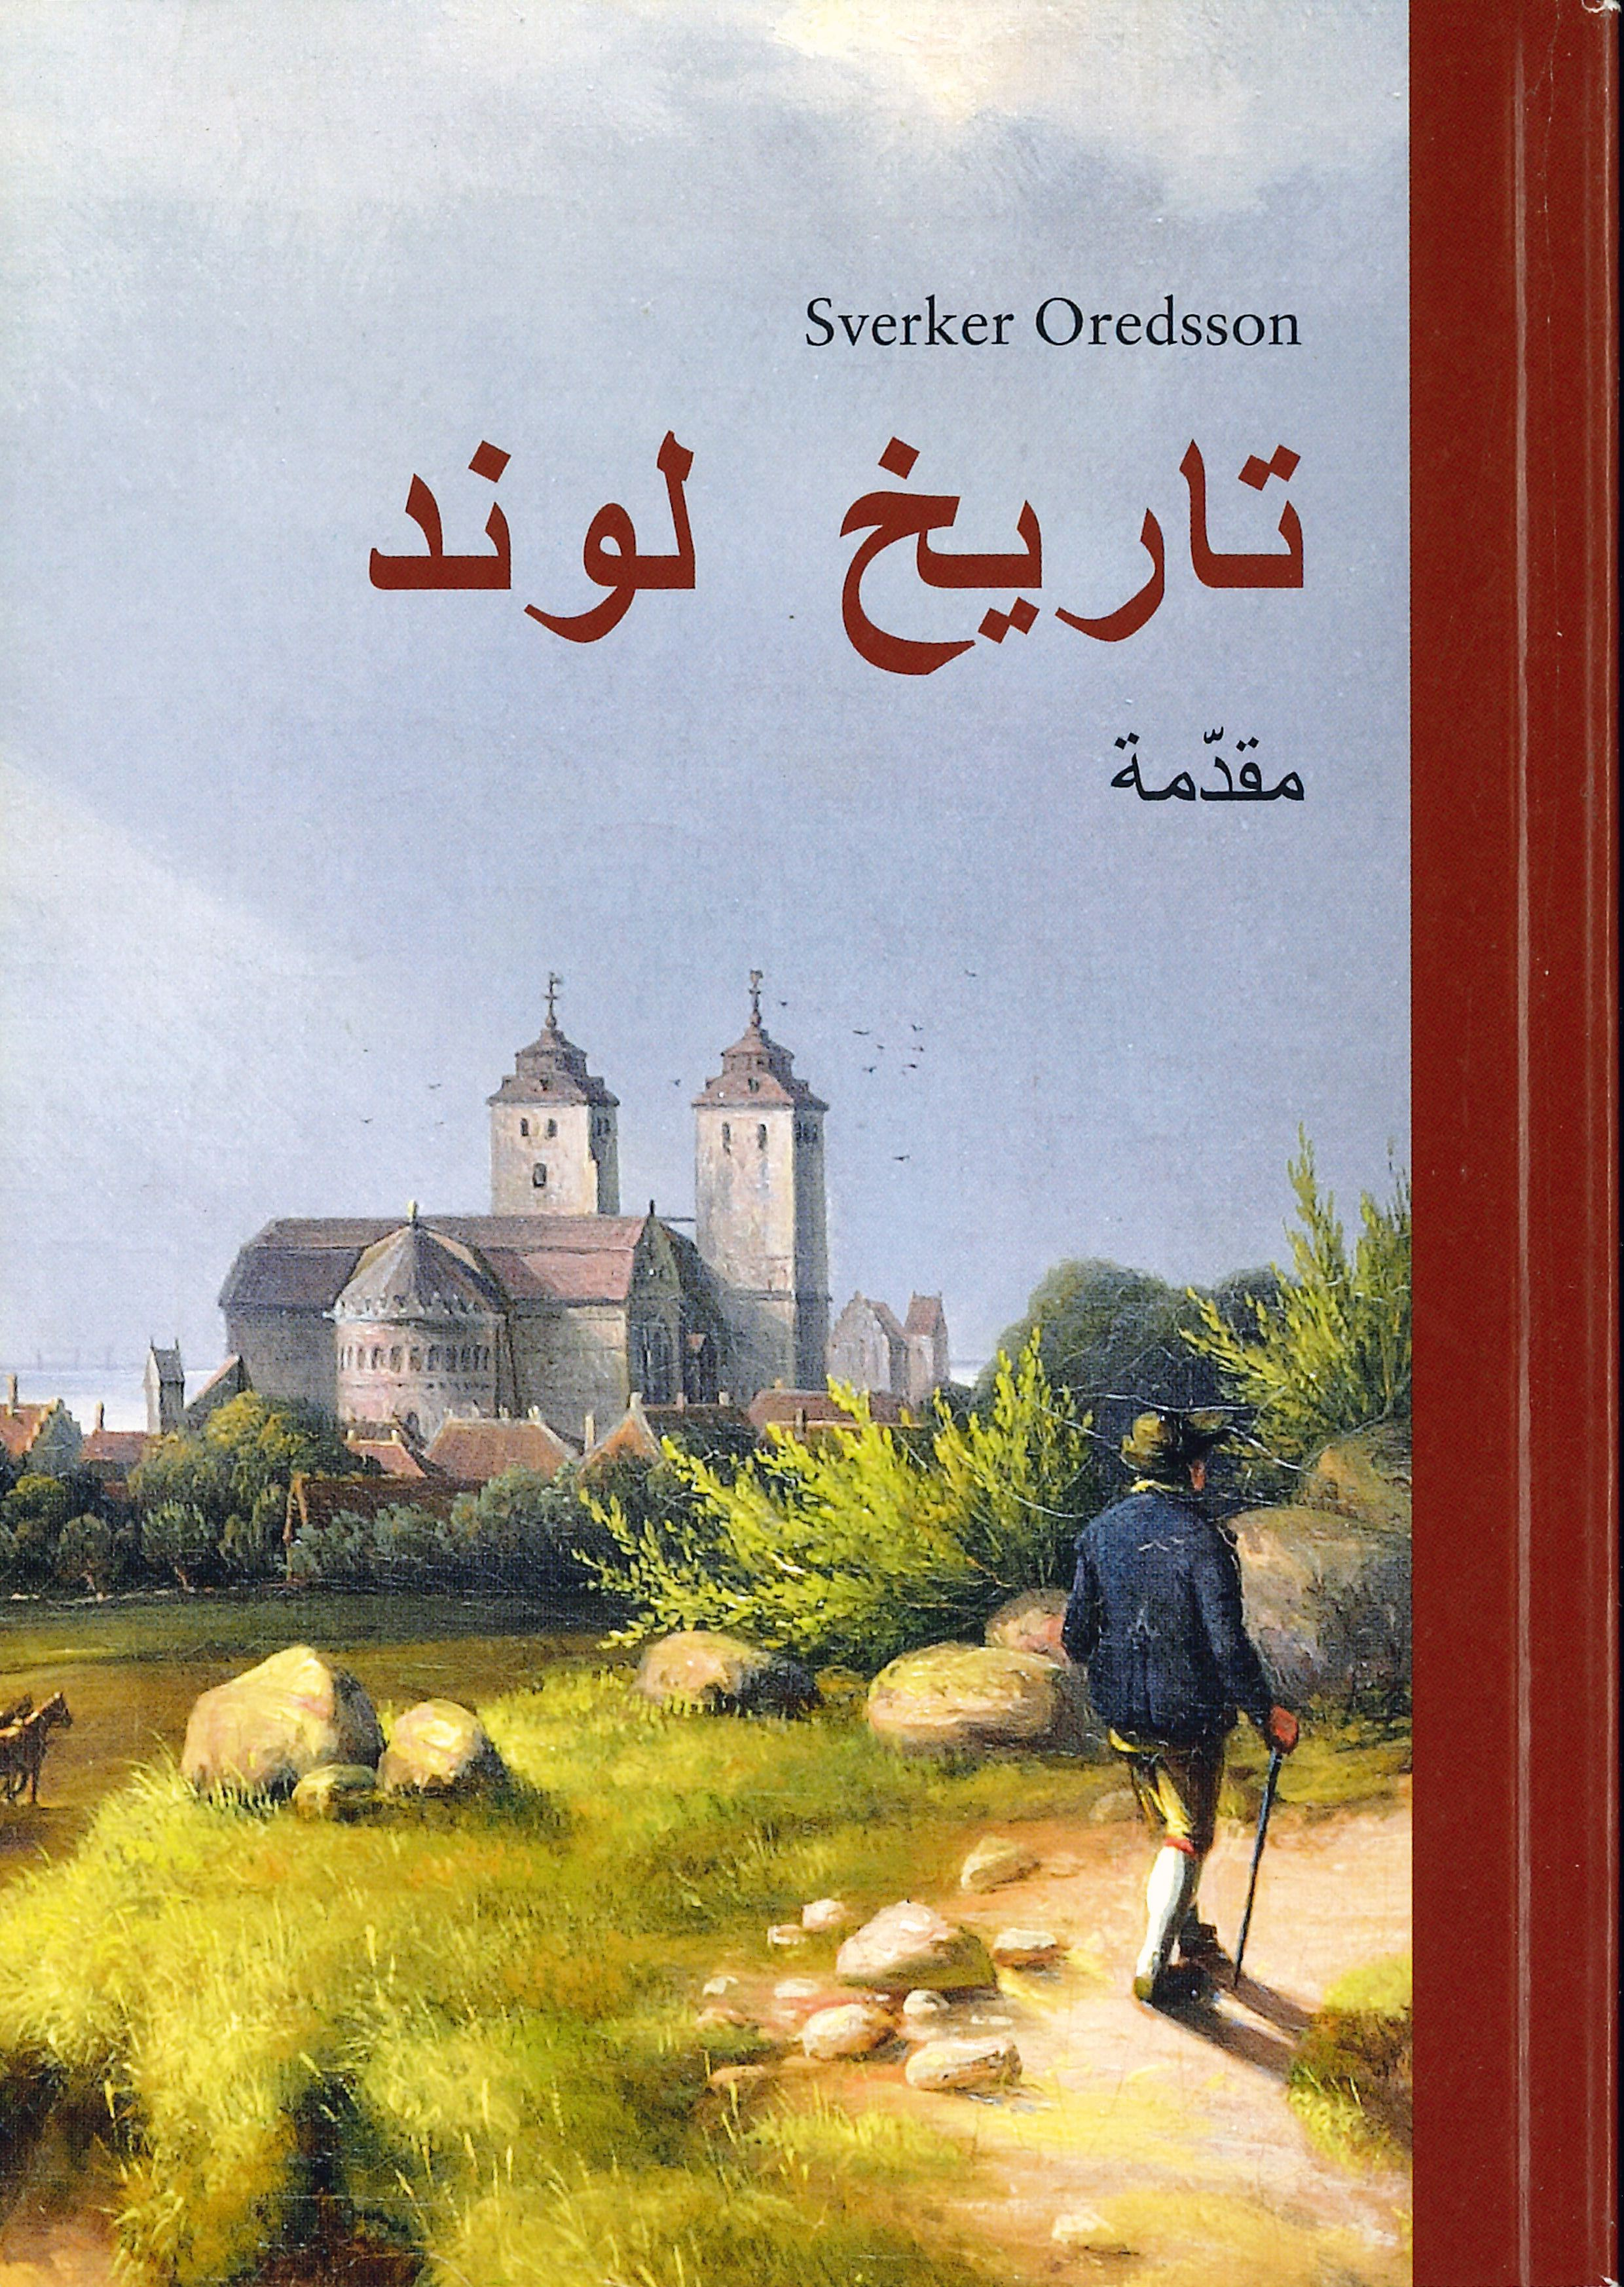 The history of Lund in arabic